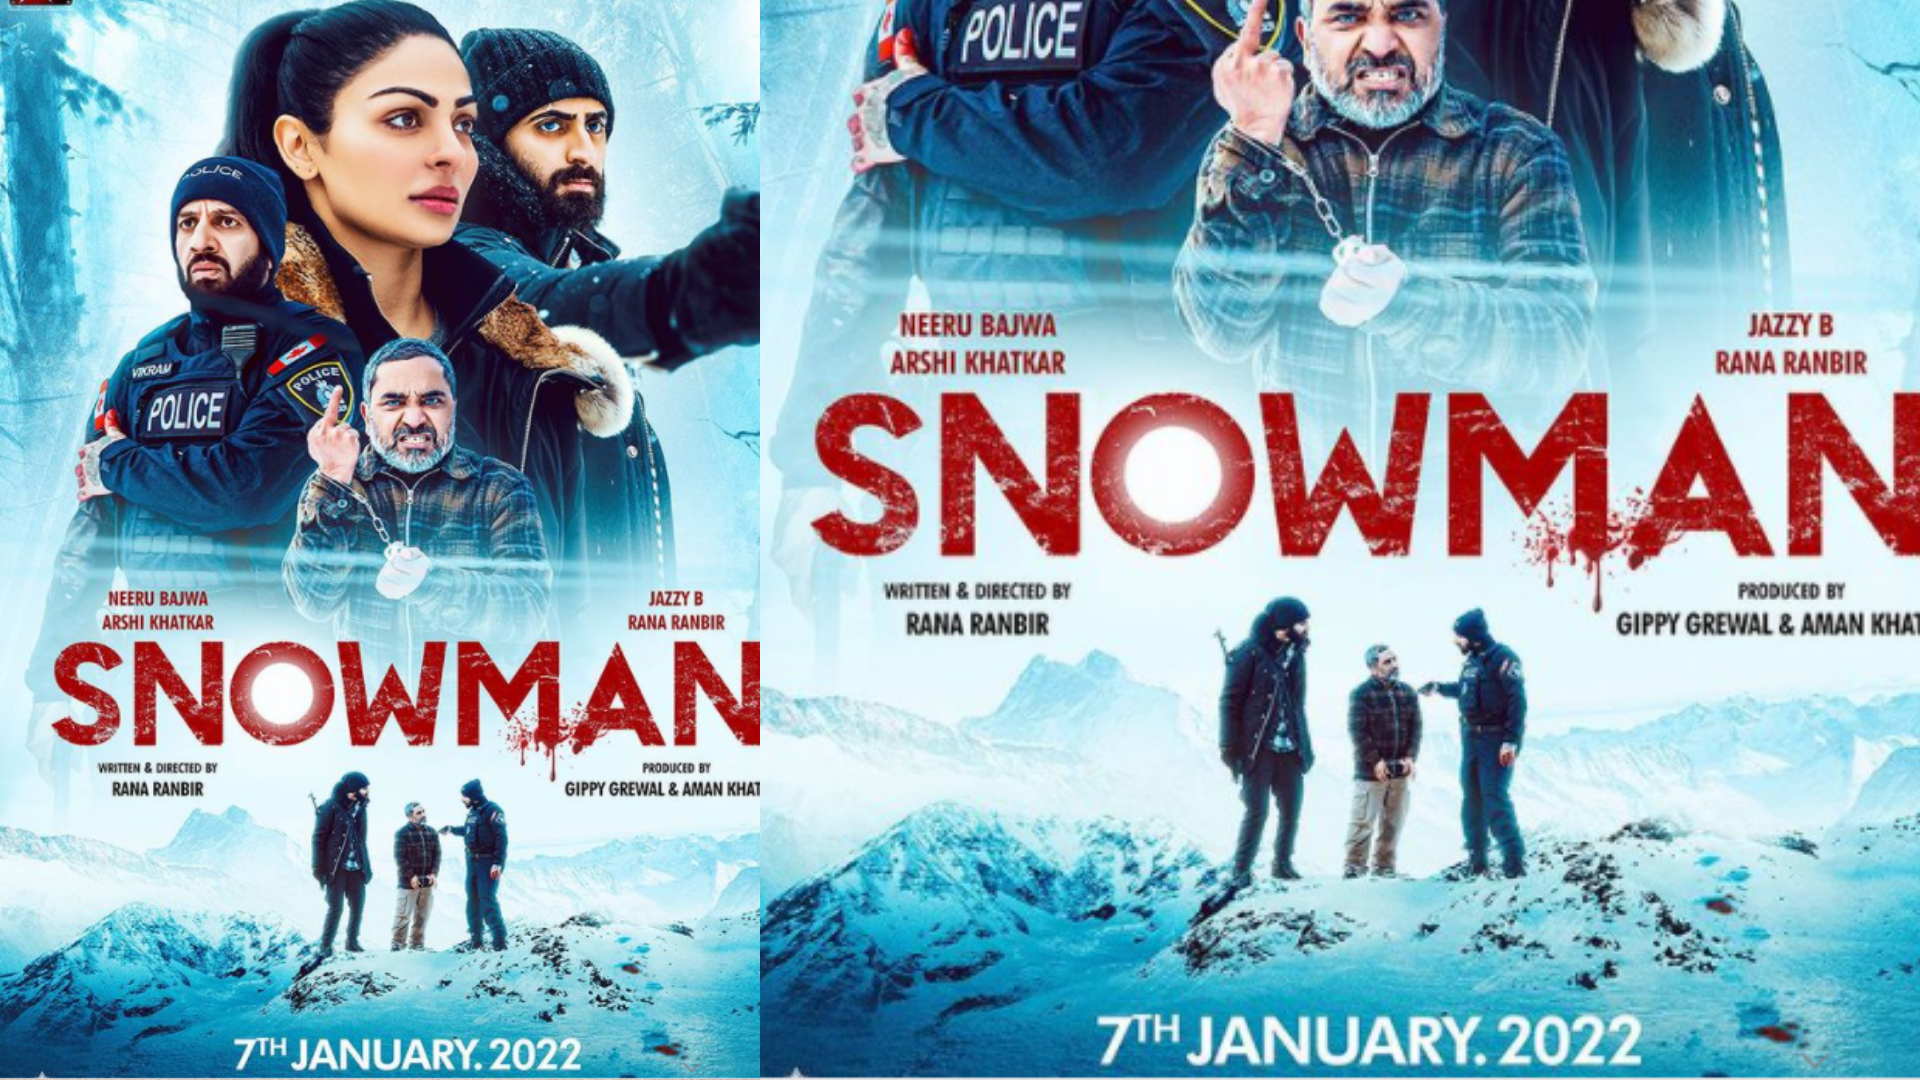 snowman movie release date 7th january2022